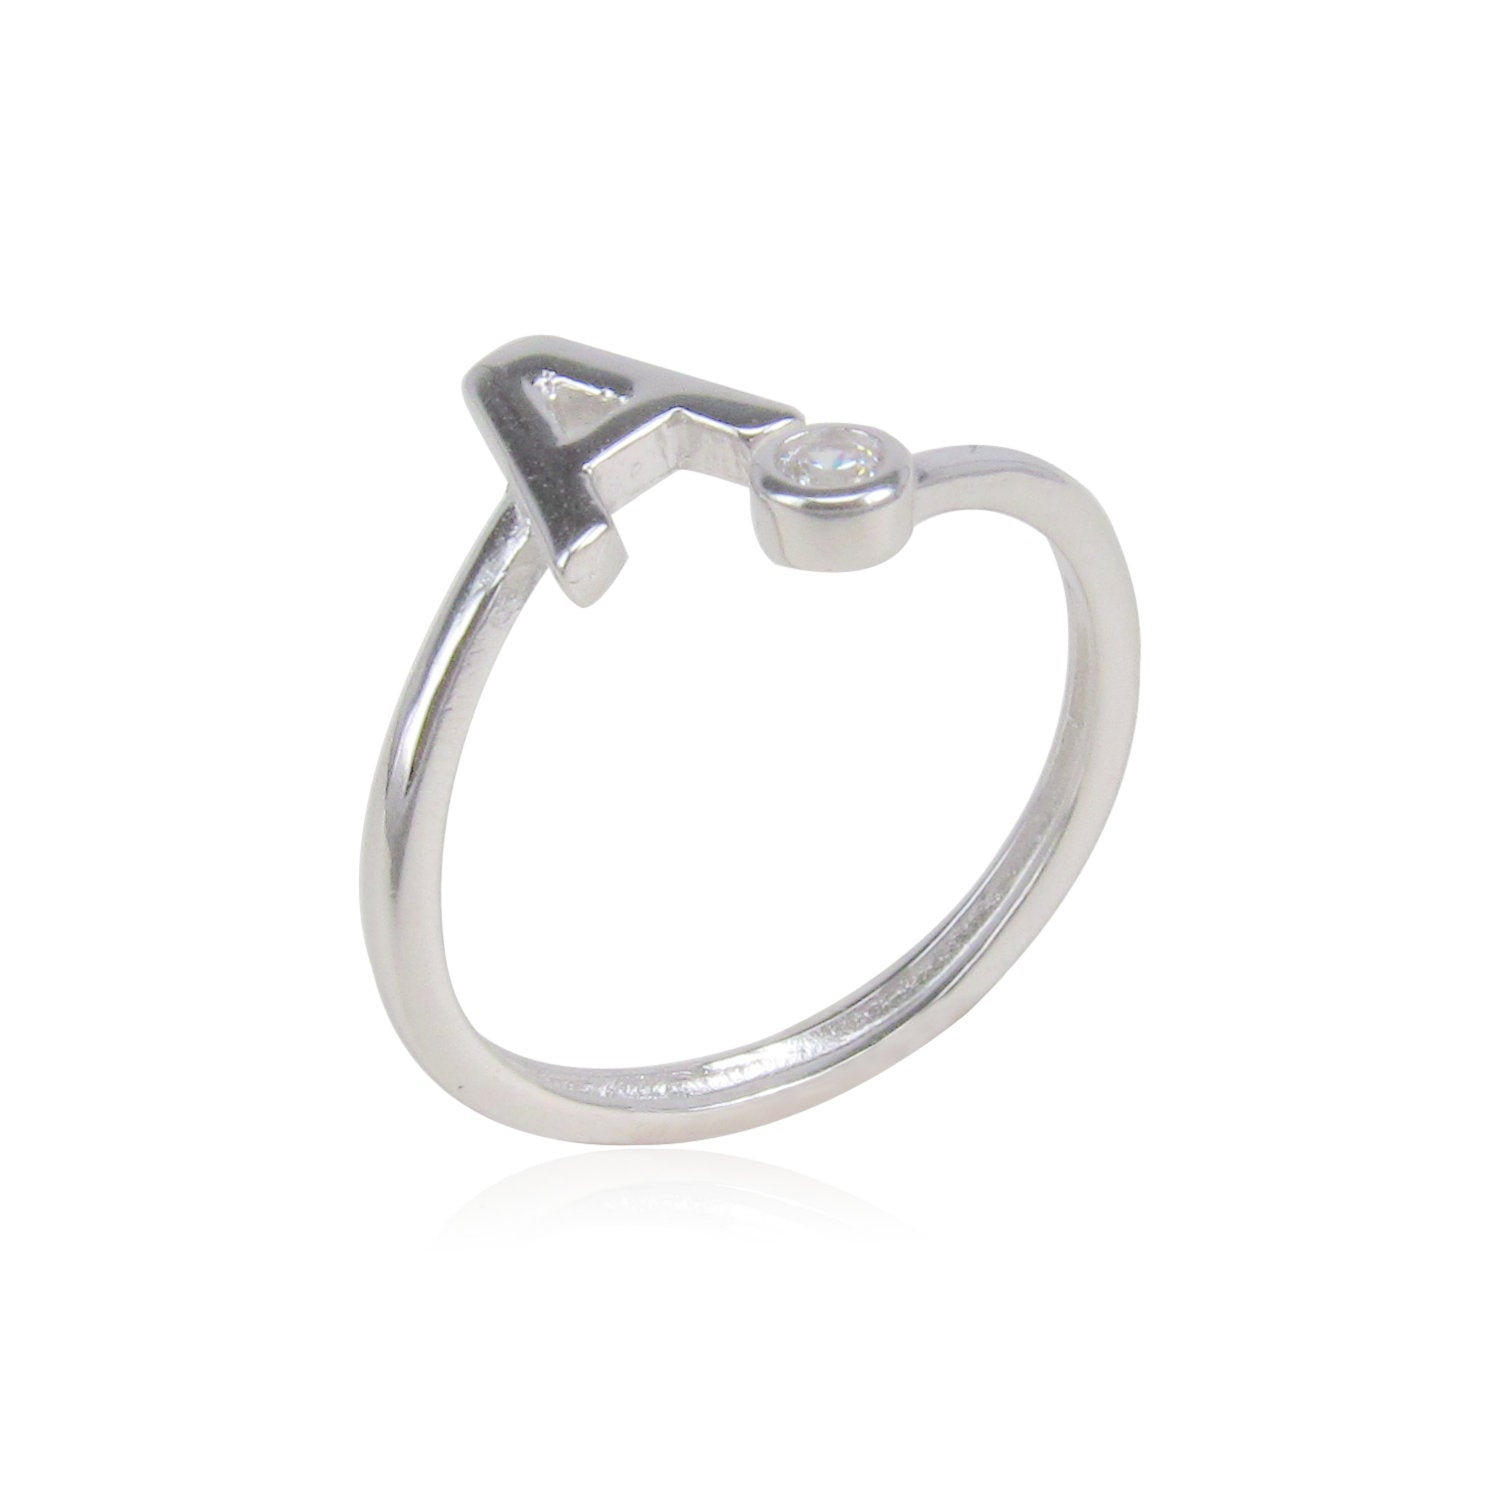 INITIAL STERLING SILVER RING